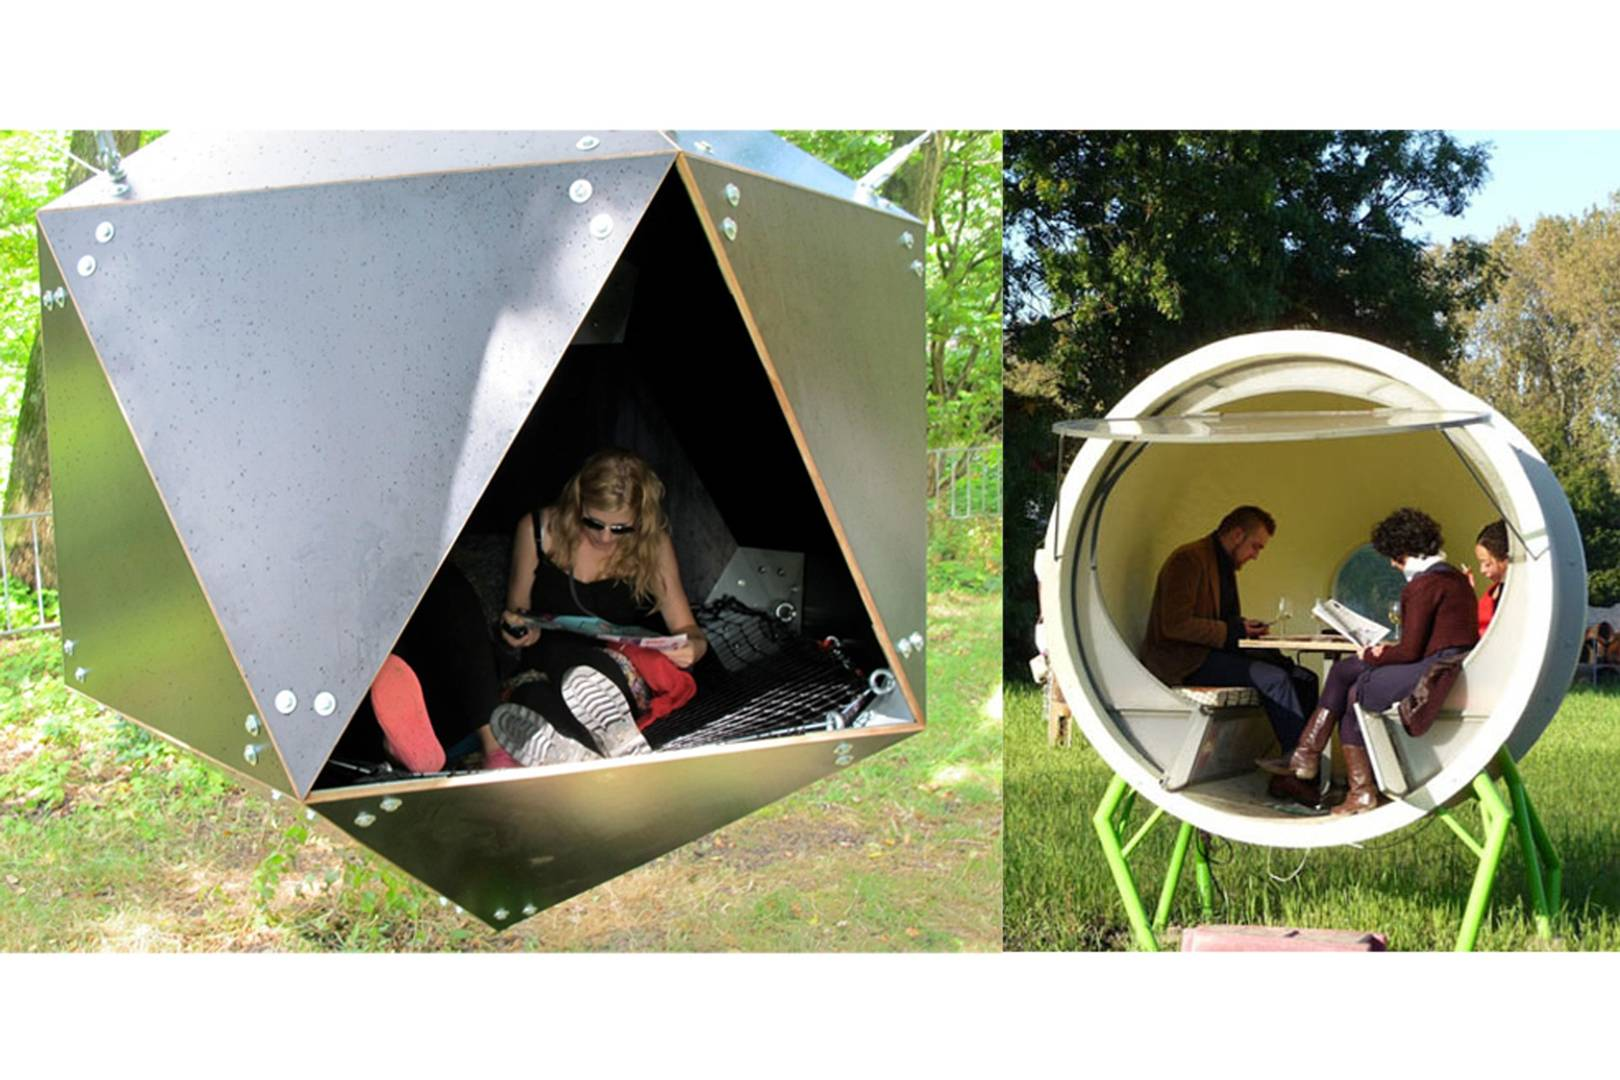 amsterdam tent camping